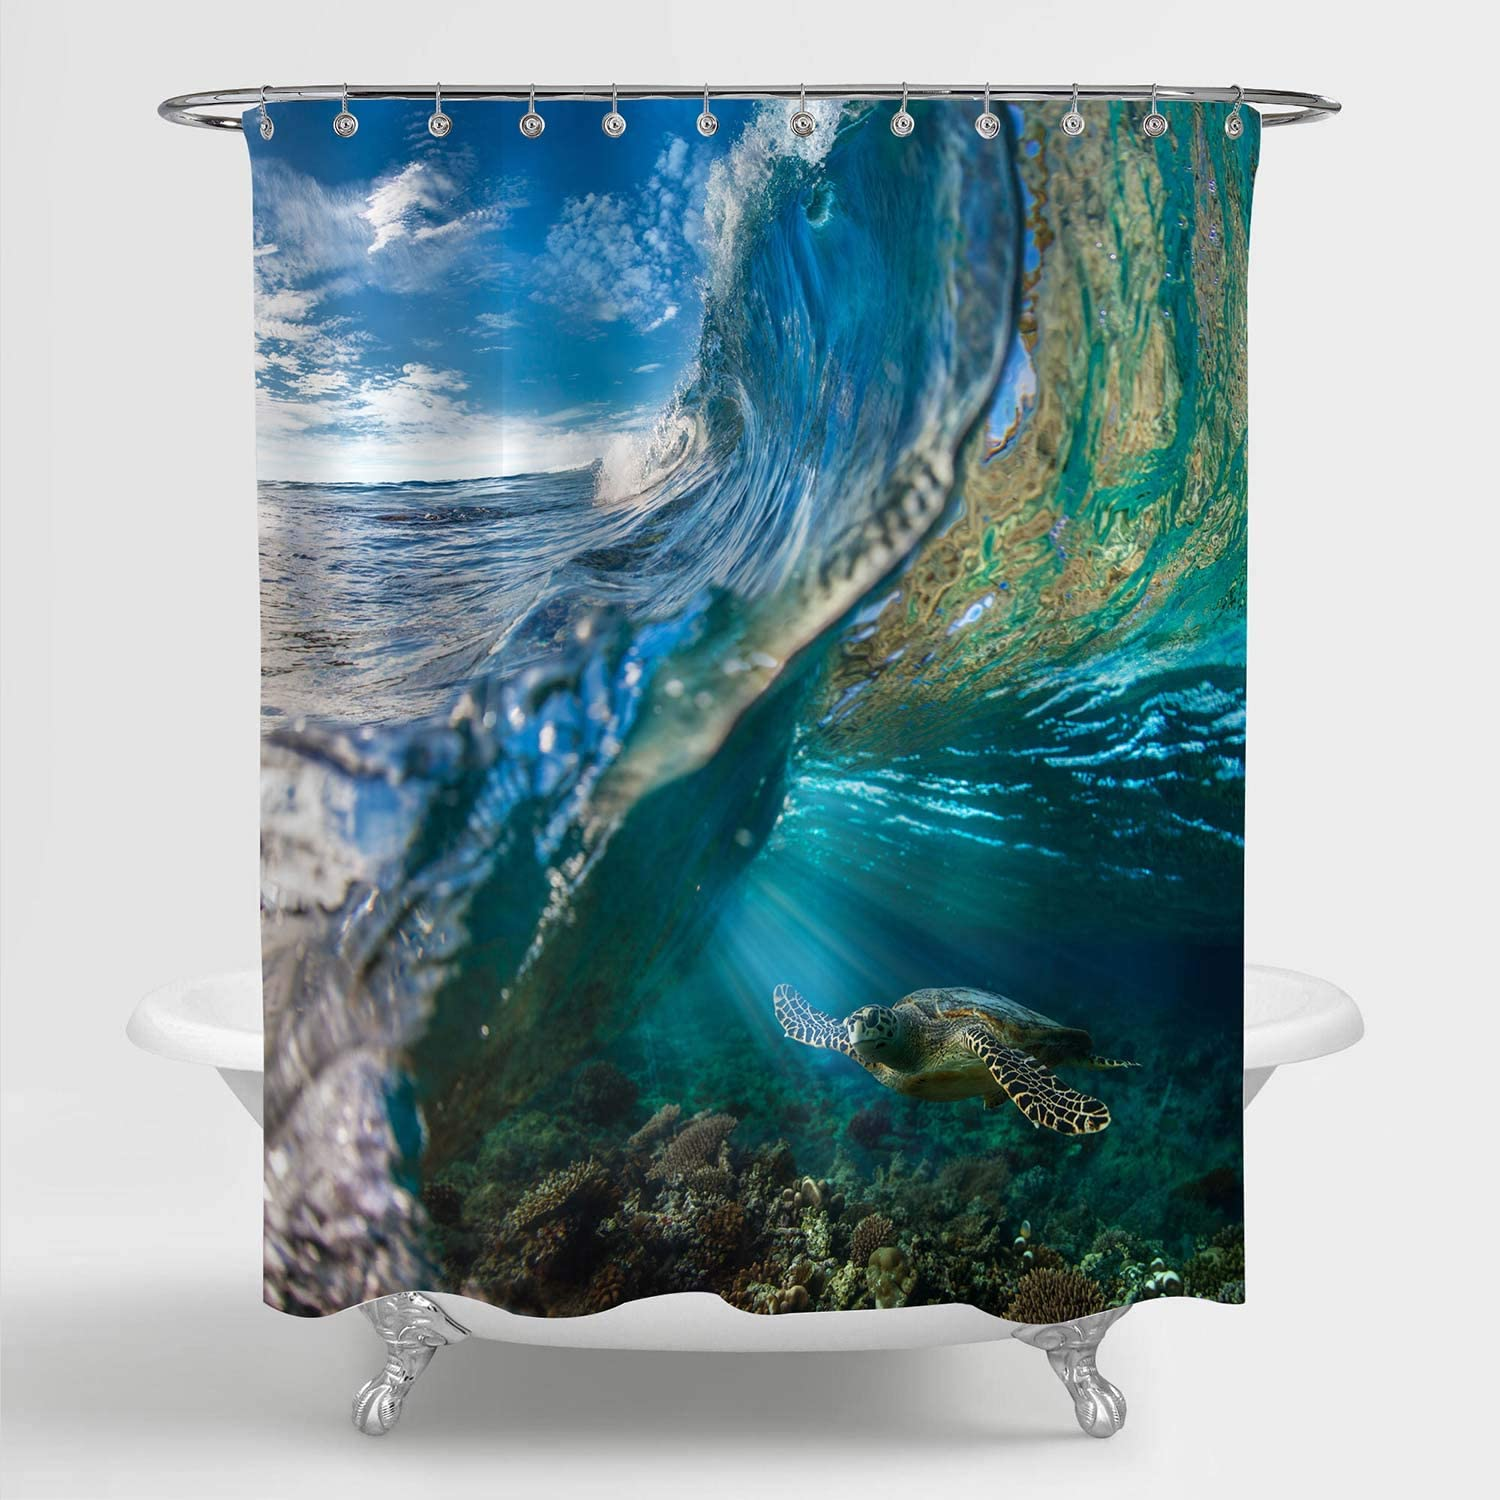 "MitoVilla Tropical Ocean Wave Scenic Shower Curtain, Sea Animal Turtle Floating Underwater Over The Coral Reef Bathroom Accessories for Summer Nature Themed Home, Grren, Blue, 72"" W x 78"" L Long"